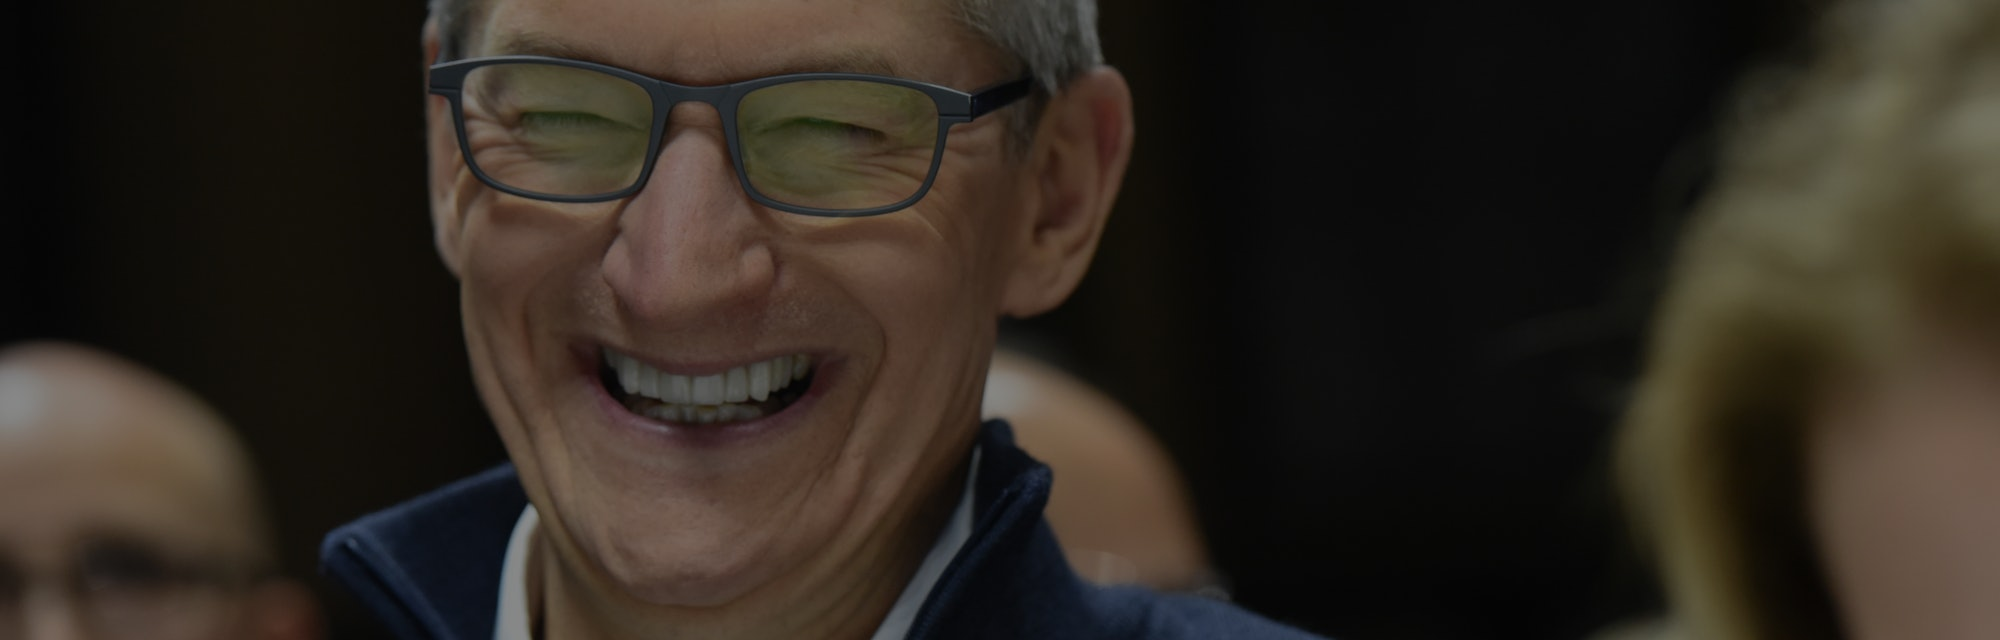 NEW YORK, NY - OCTOBER 30: Tim Cook, CEO of Apple, laughs during a launch event unveiling new produc...